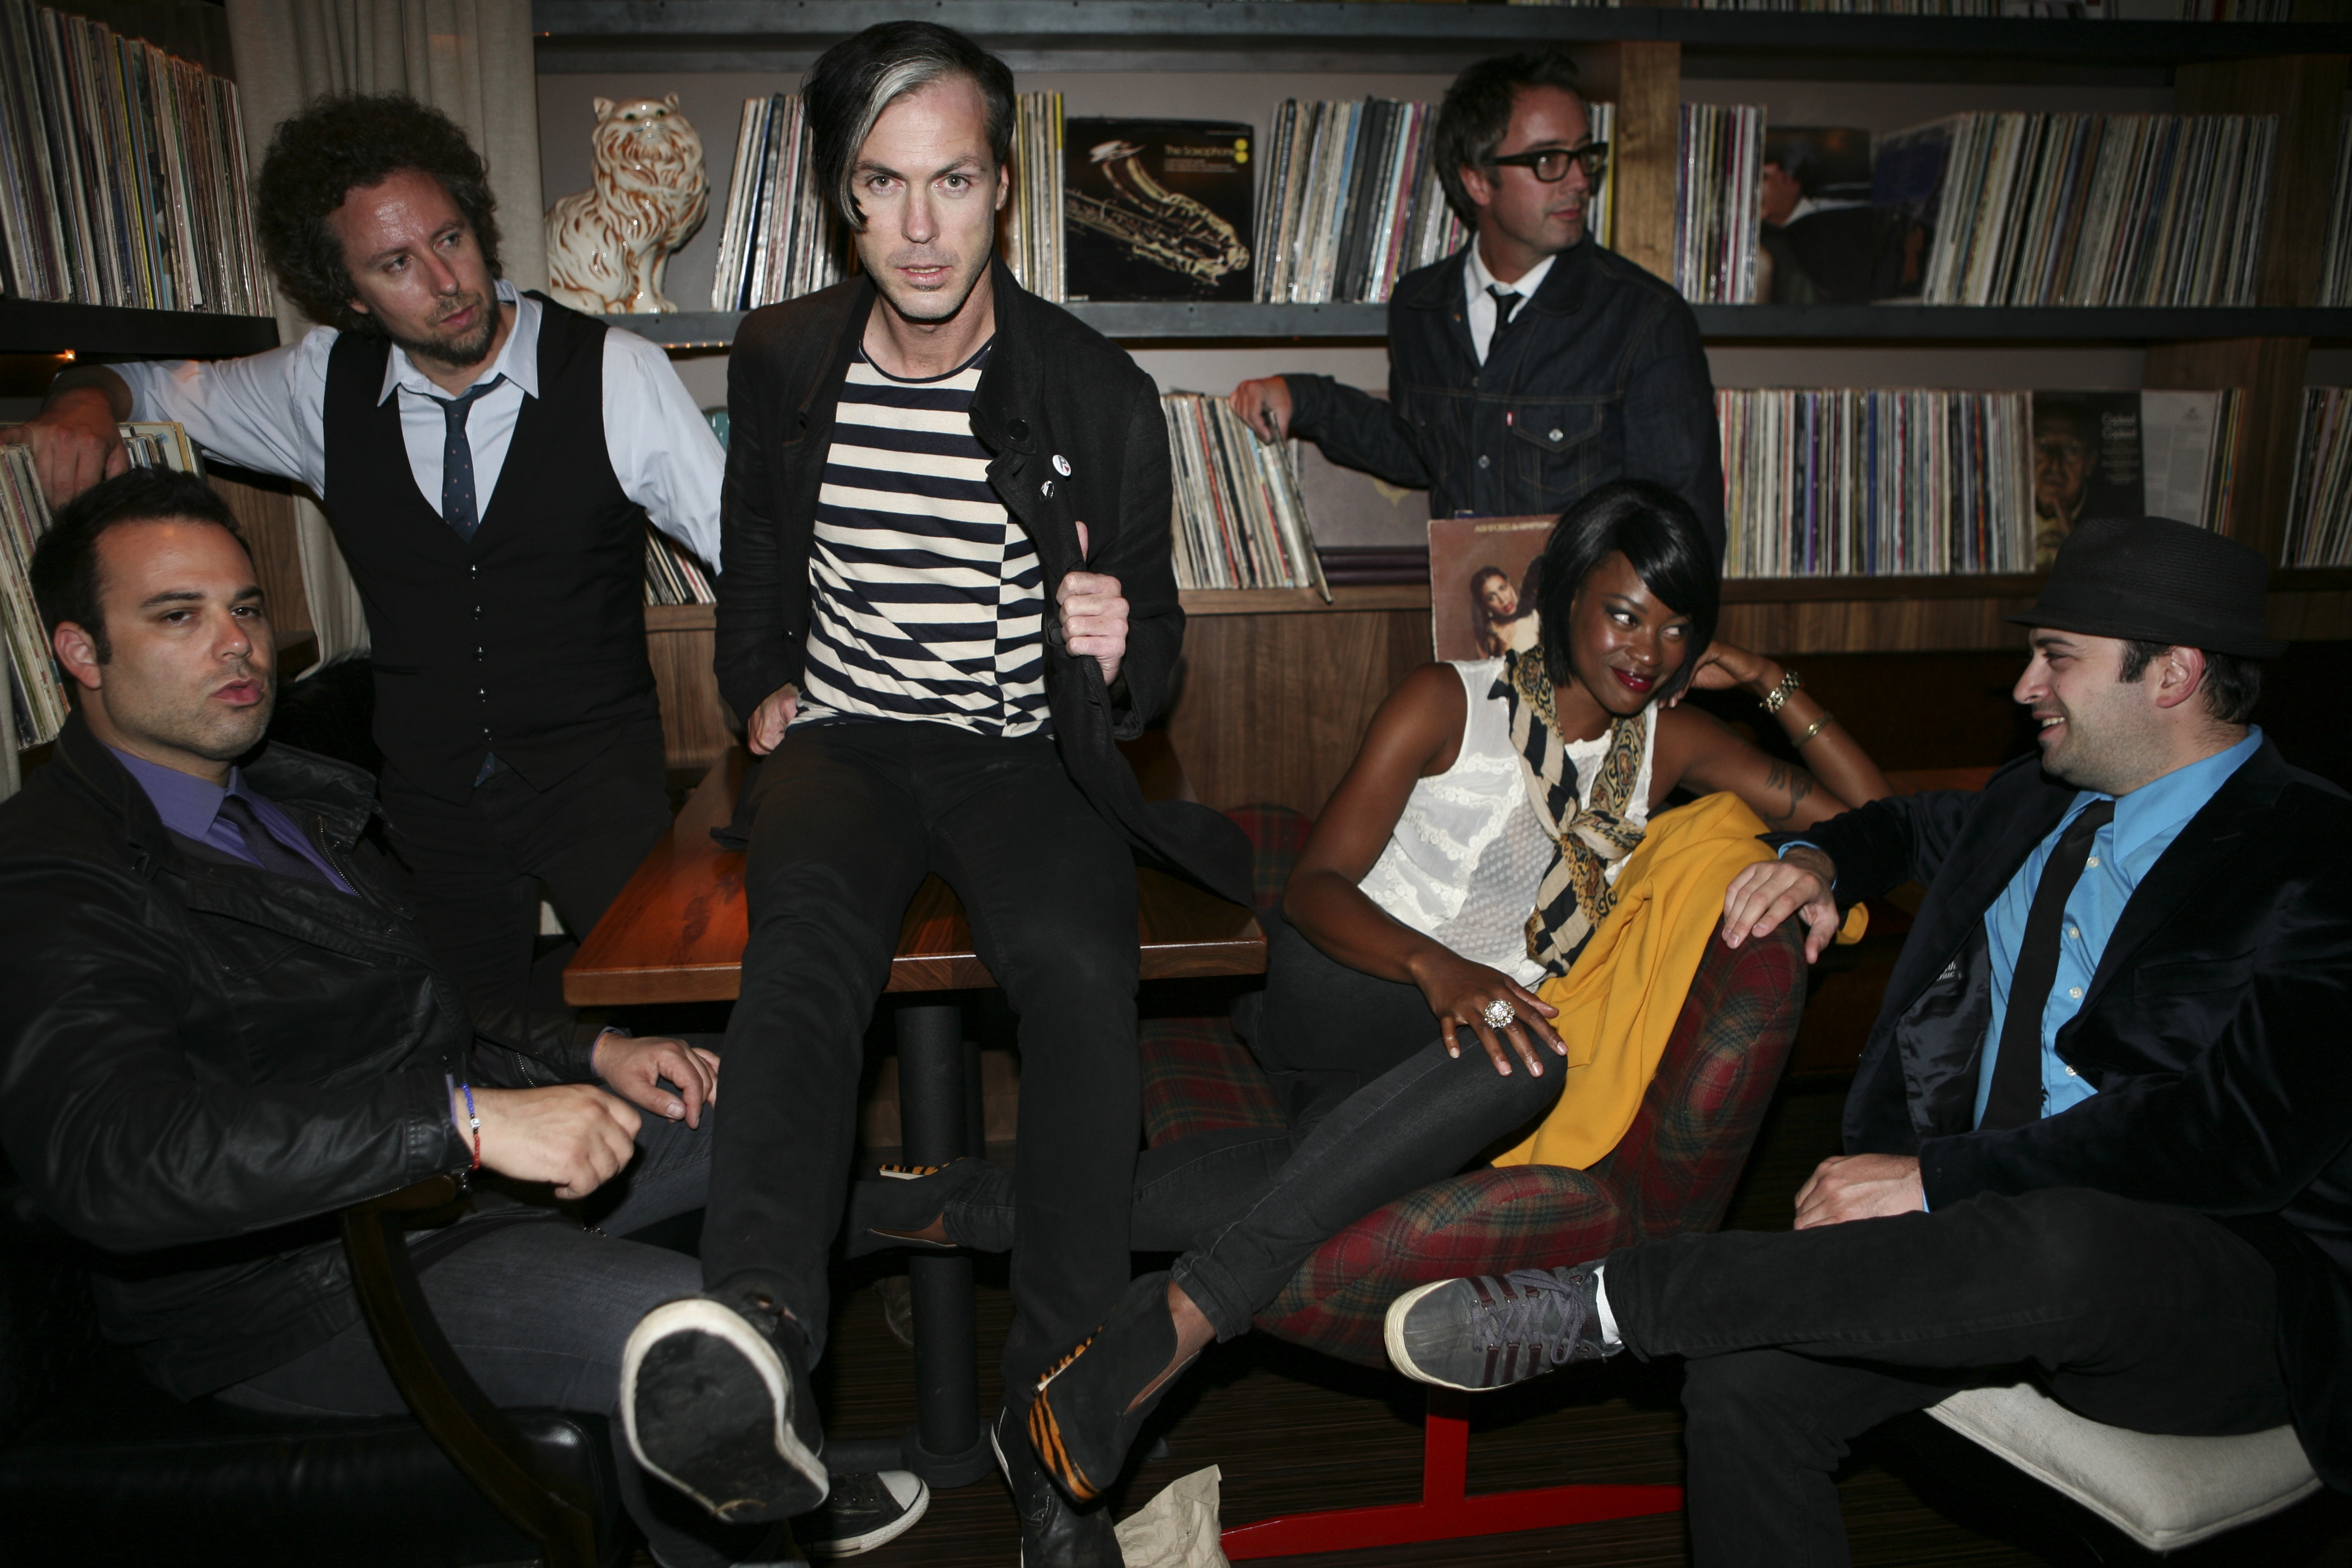 fitz and the tantrums singers dating models